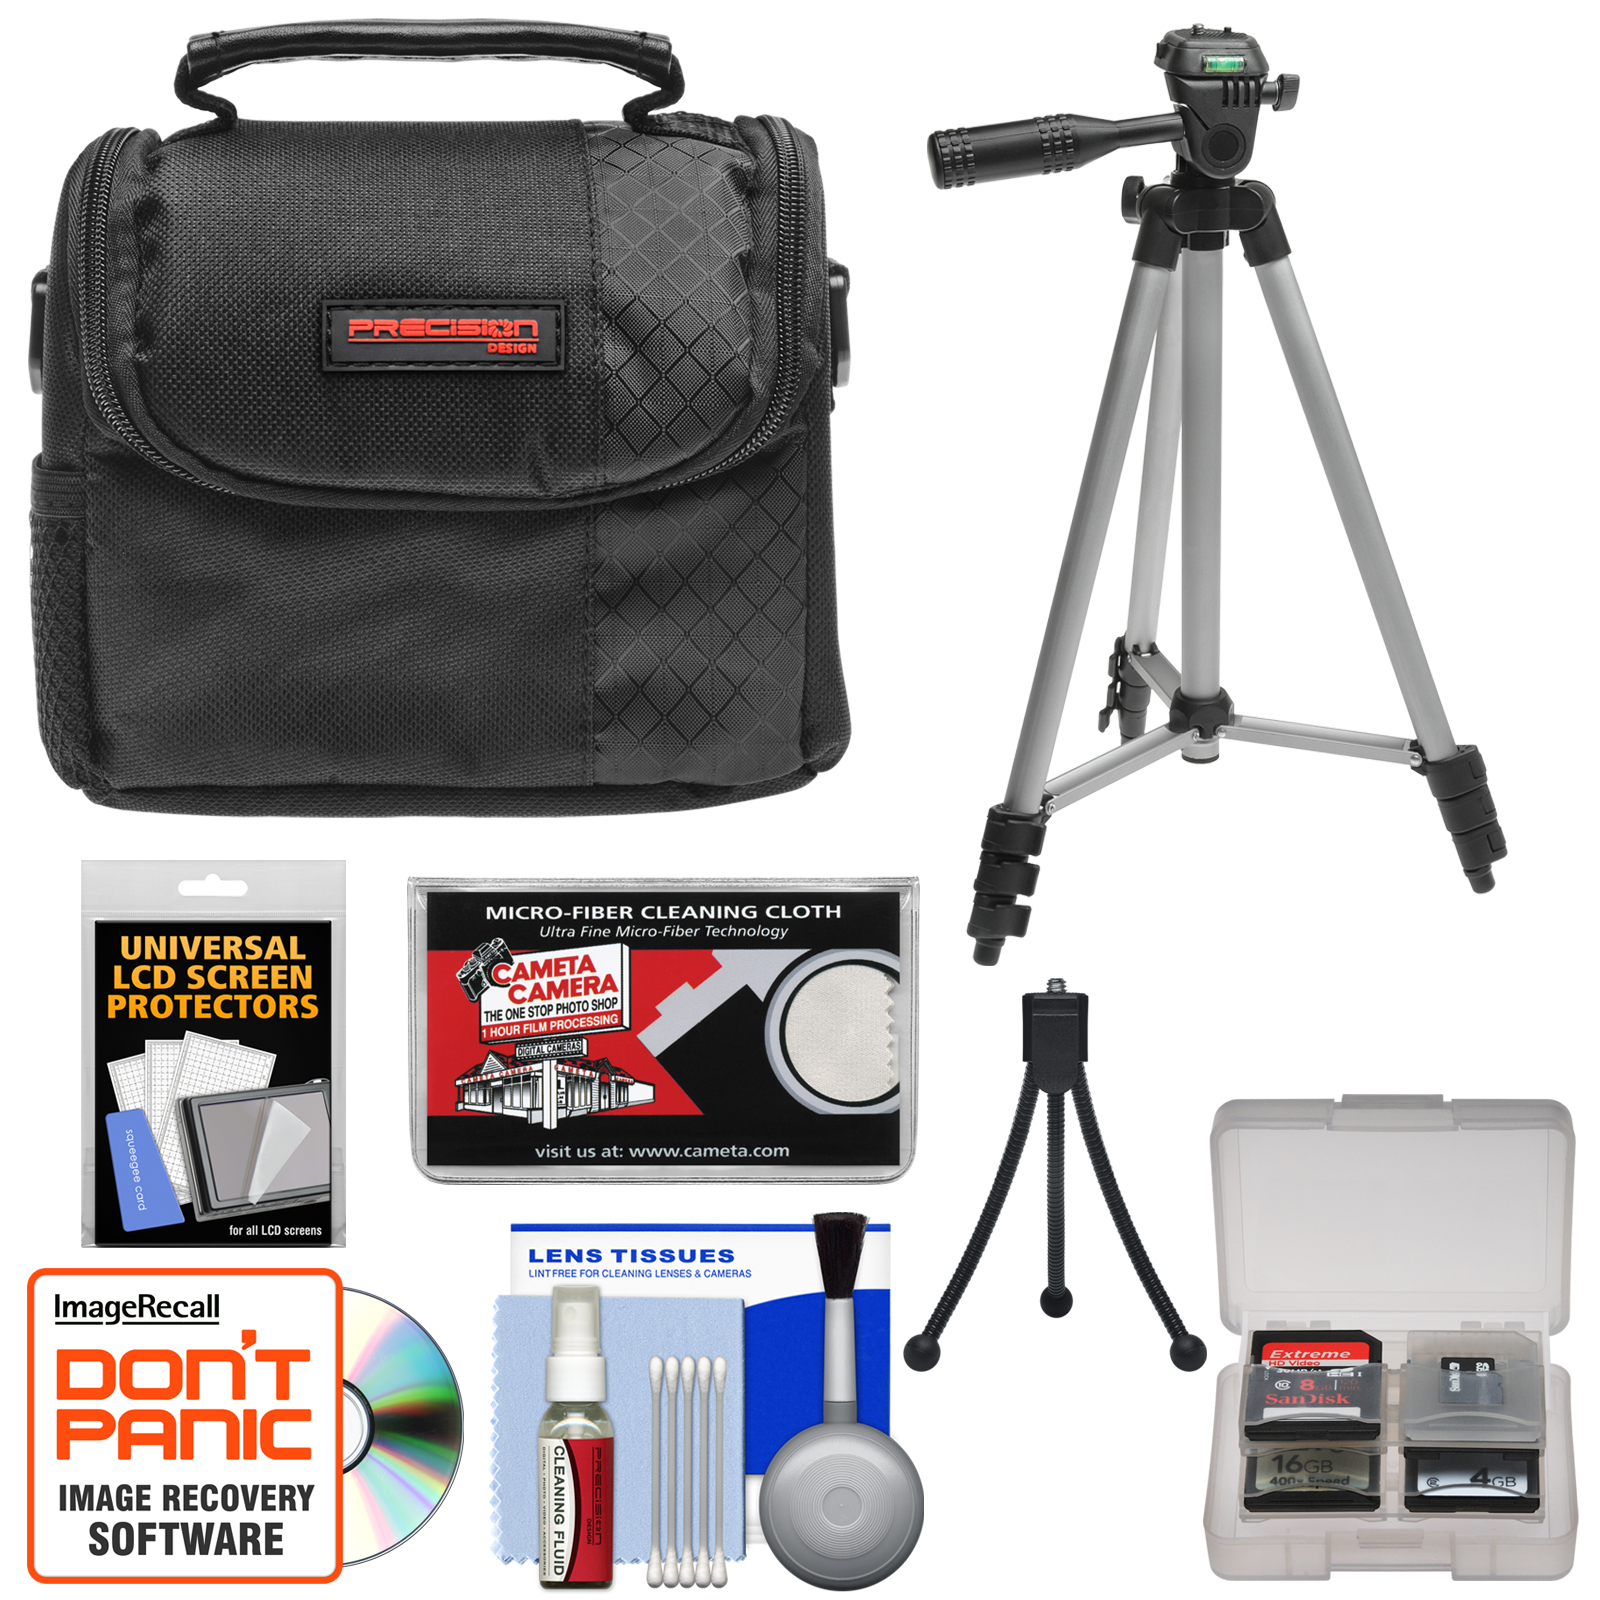 Kodak EasyShare Digital Cameras Accessory Kit with Camera Case & Tripod for C142, C143, C183, C195, M522, M532, M552, M583, M590, MAX, MINI, SPORT & TOUCH Cameras